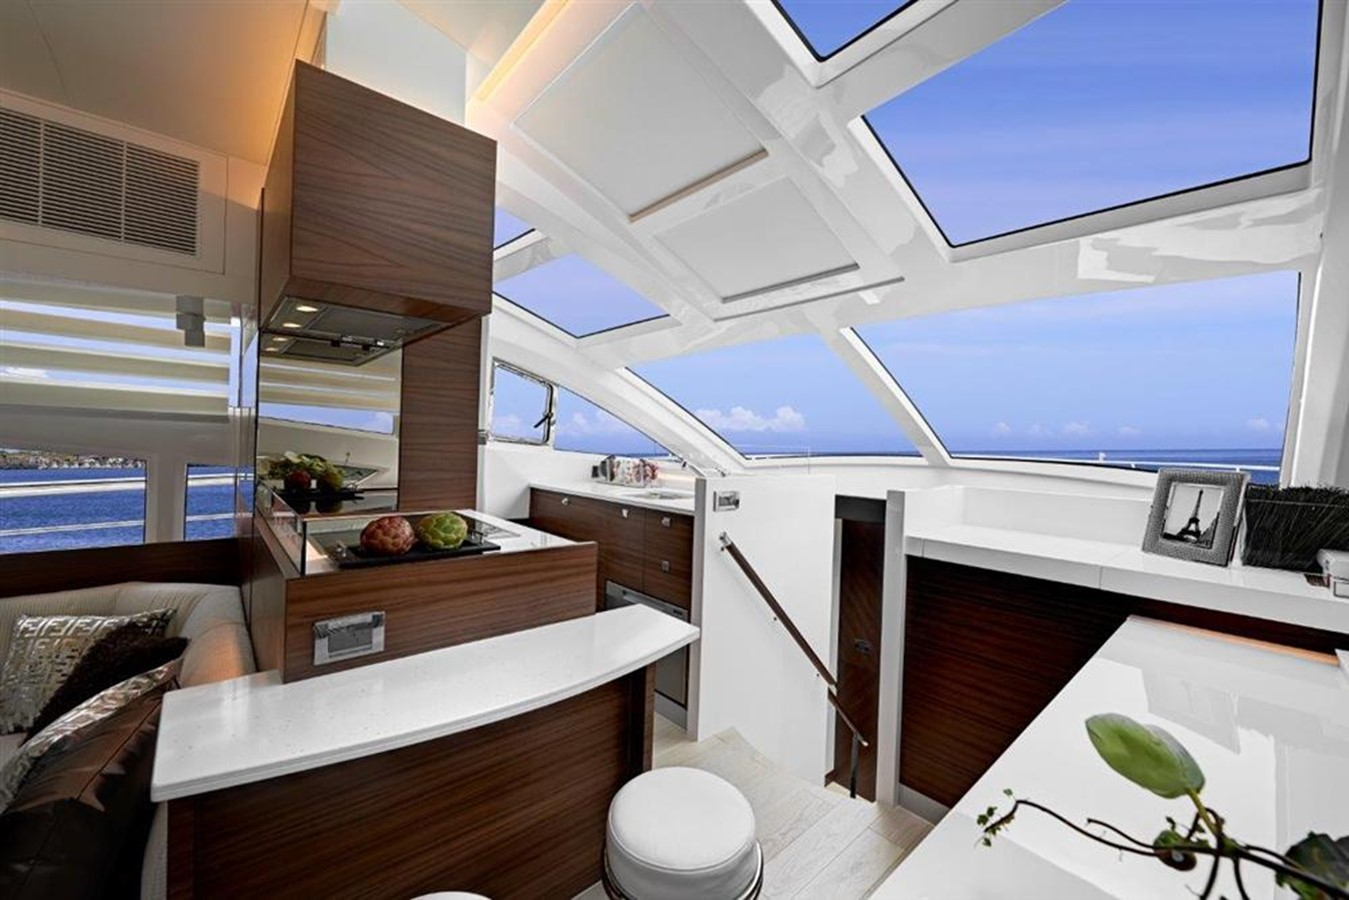 Galley 2021 HORIZON E56 Motor Yacht 2205417